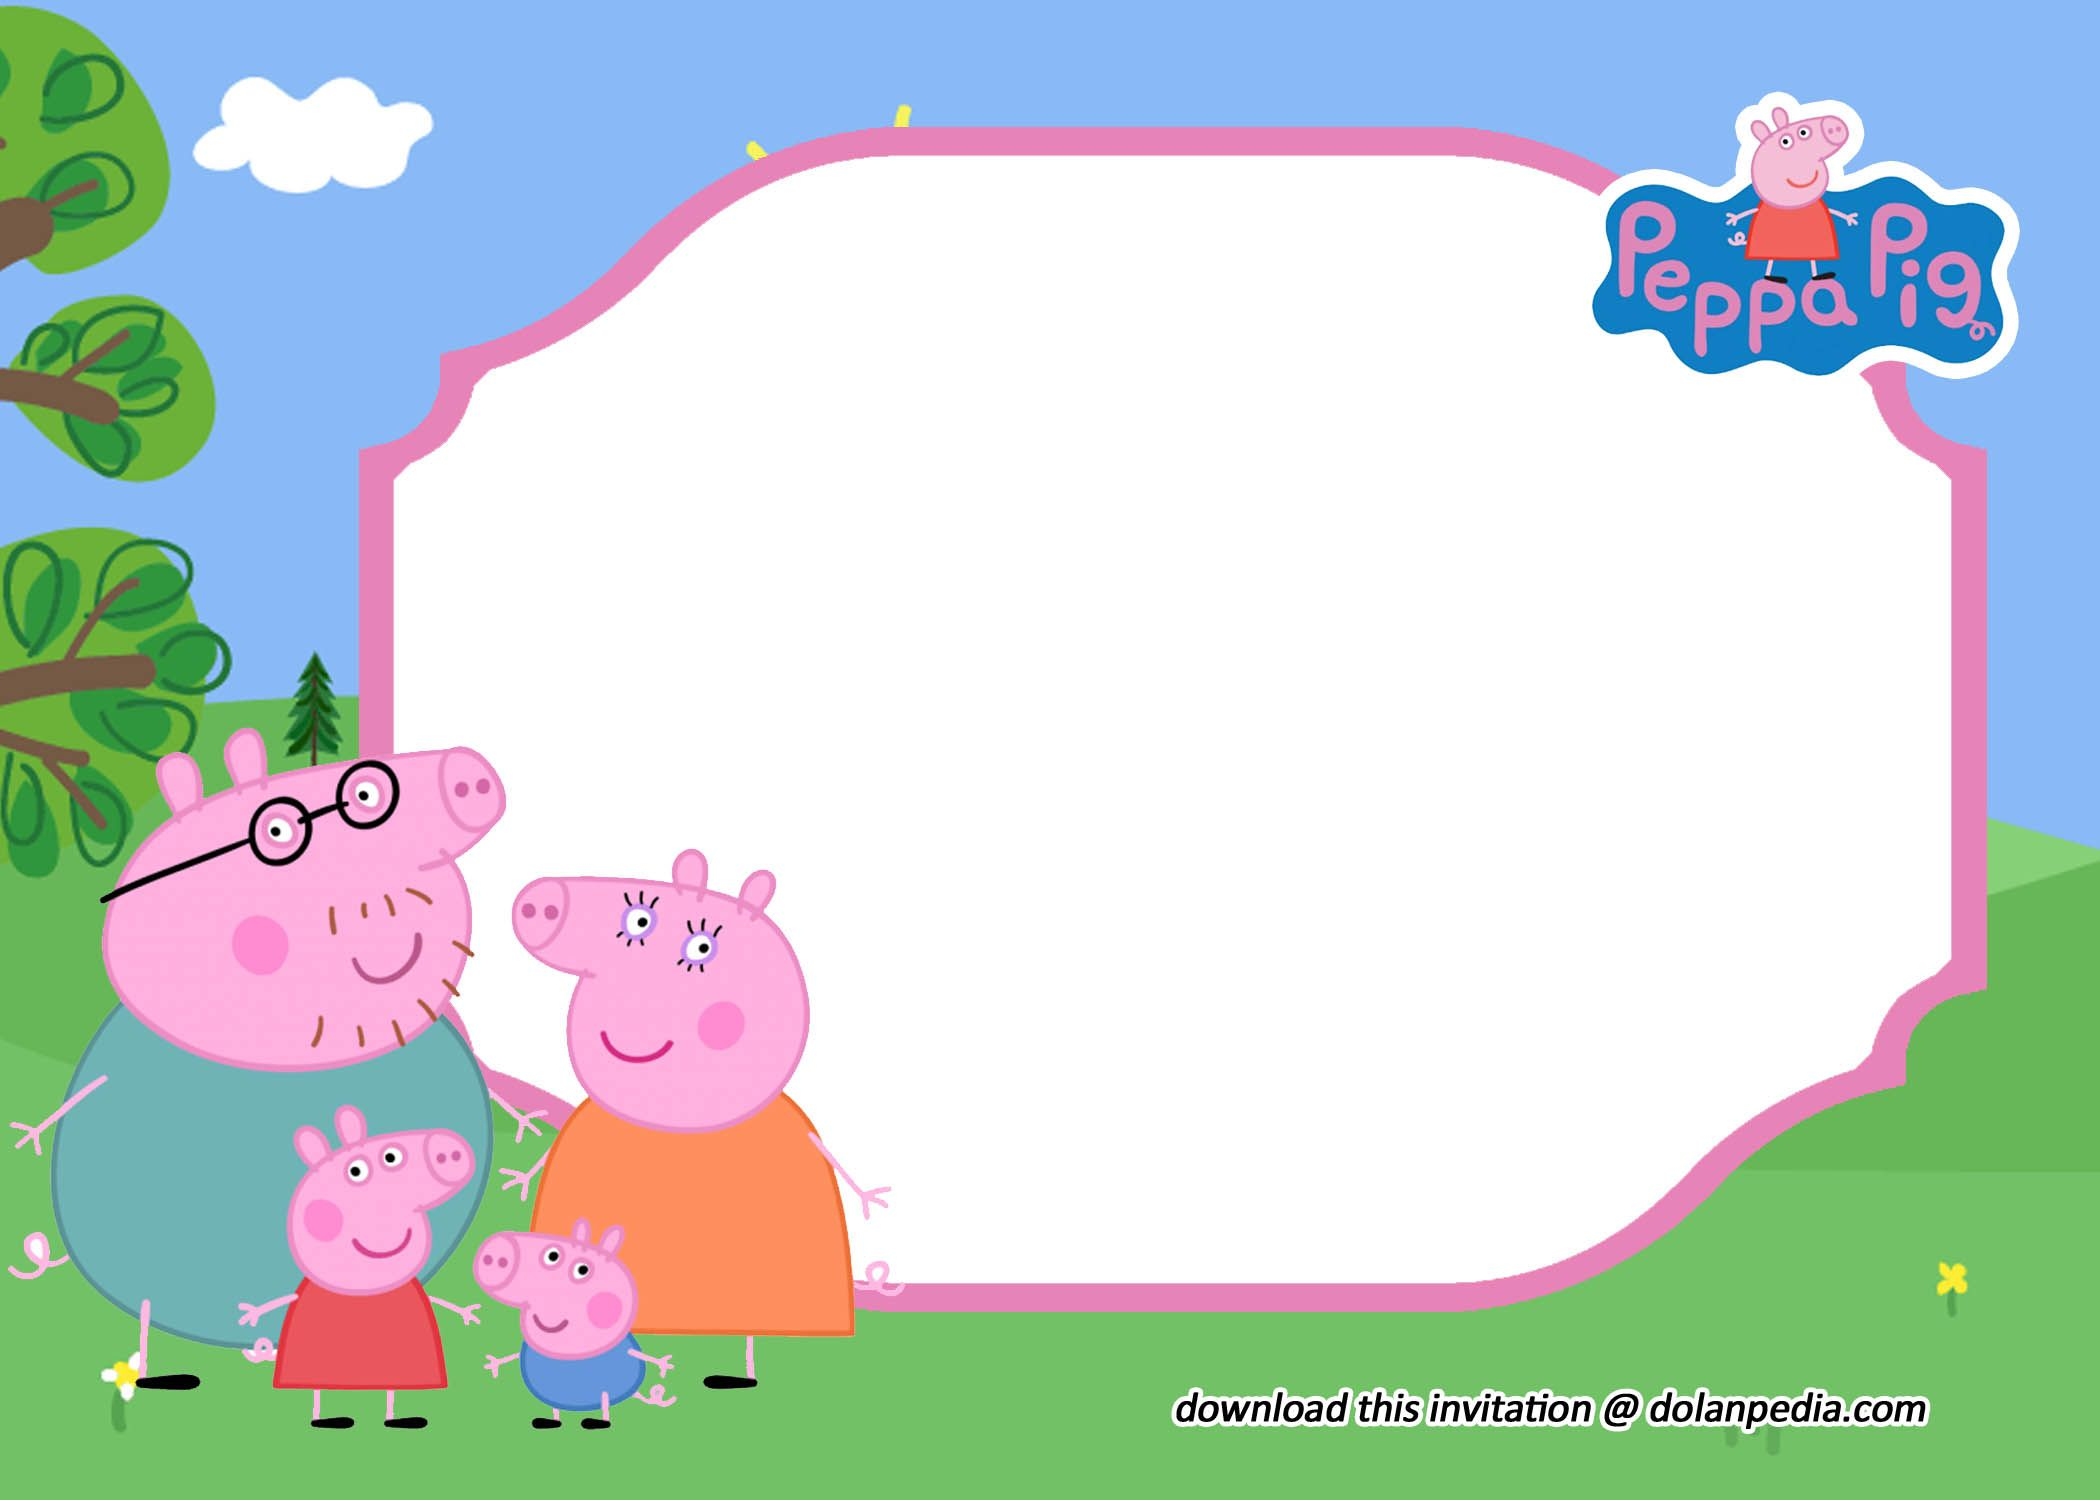 Free Editable Peppa Pig Invitation Templates Pig Invitation Peppa Pig Invitations Peppa Pig Birthday